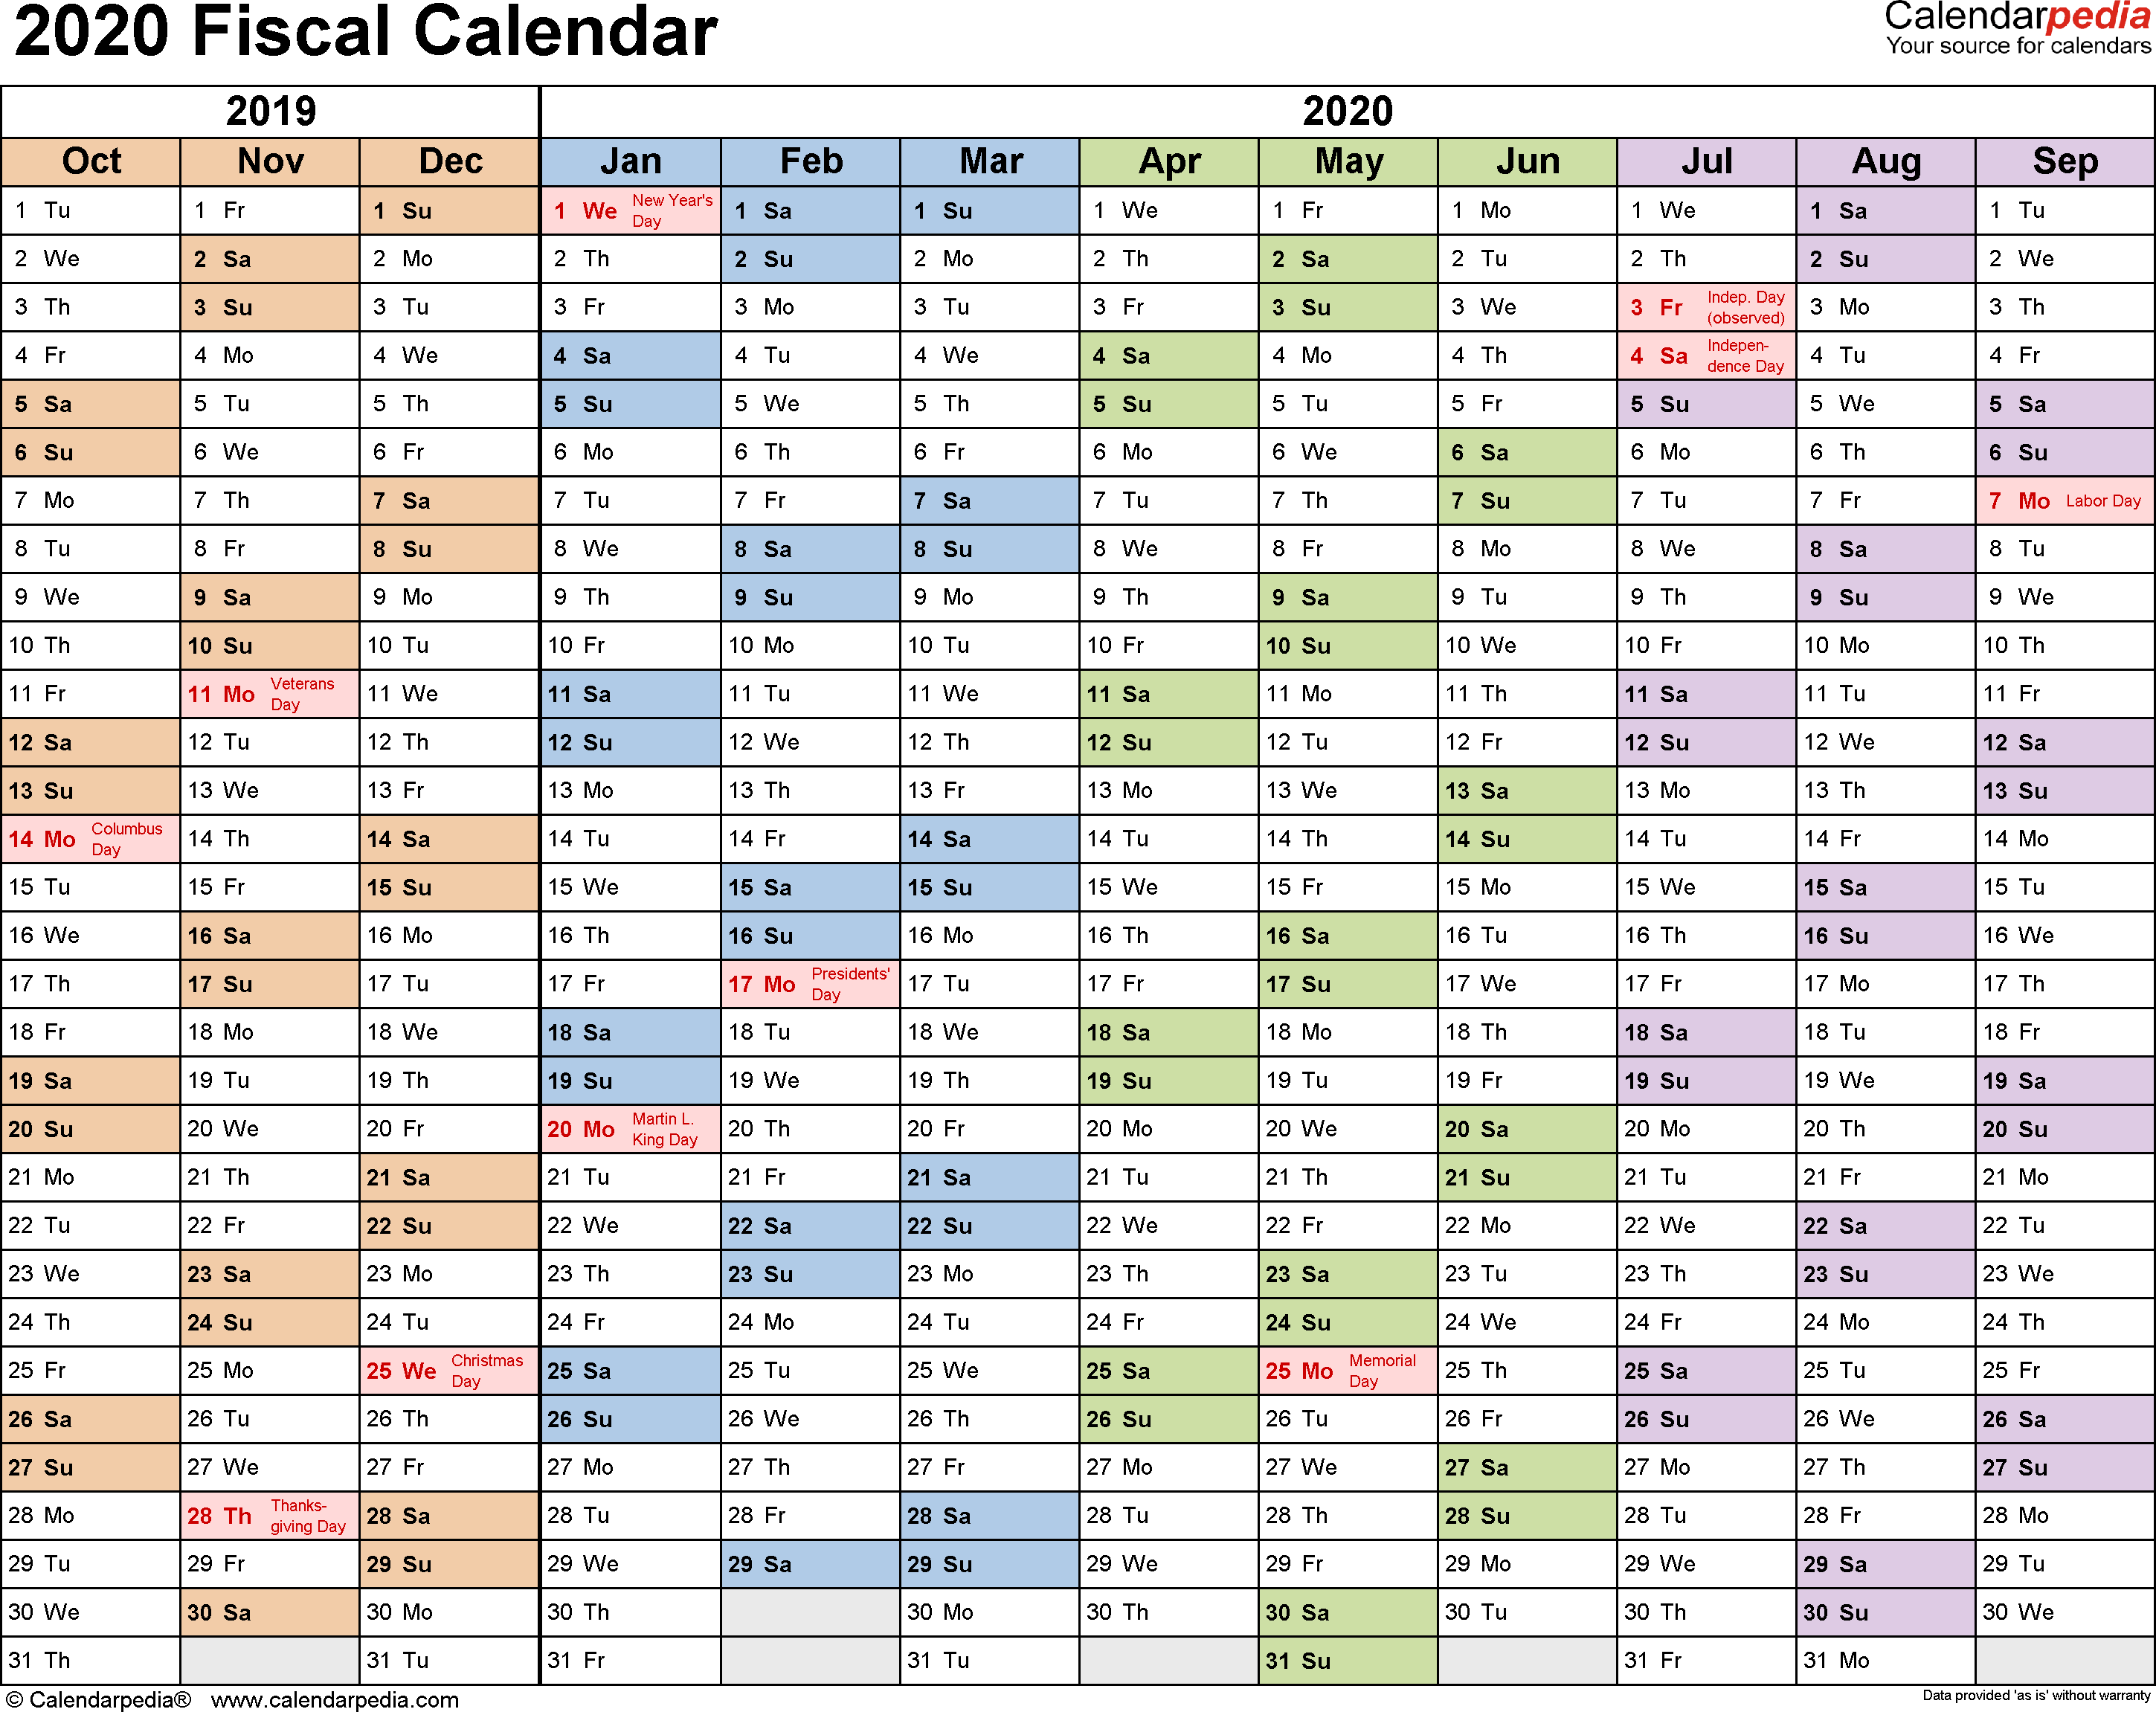 Apple Fiscal Year 2019 Calendar With Calendars 2020 As Free Printable Excel Templates